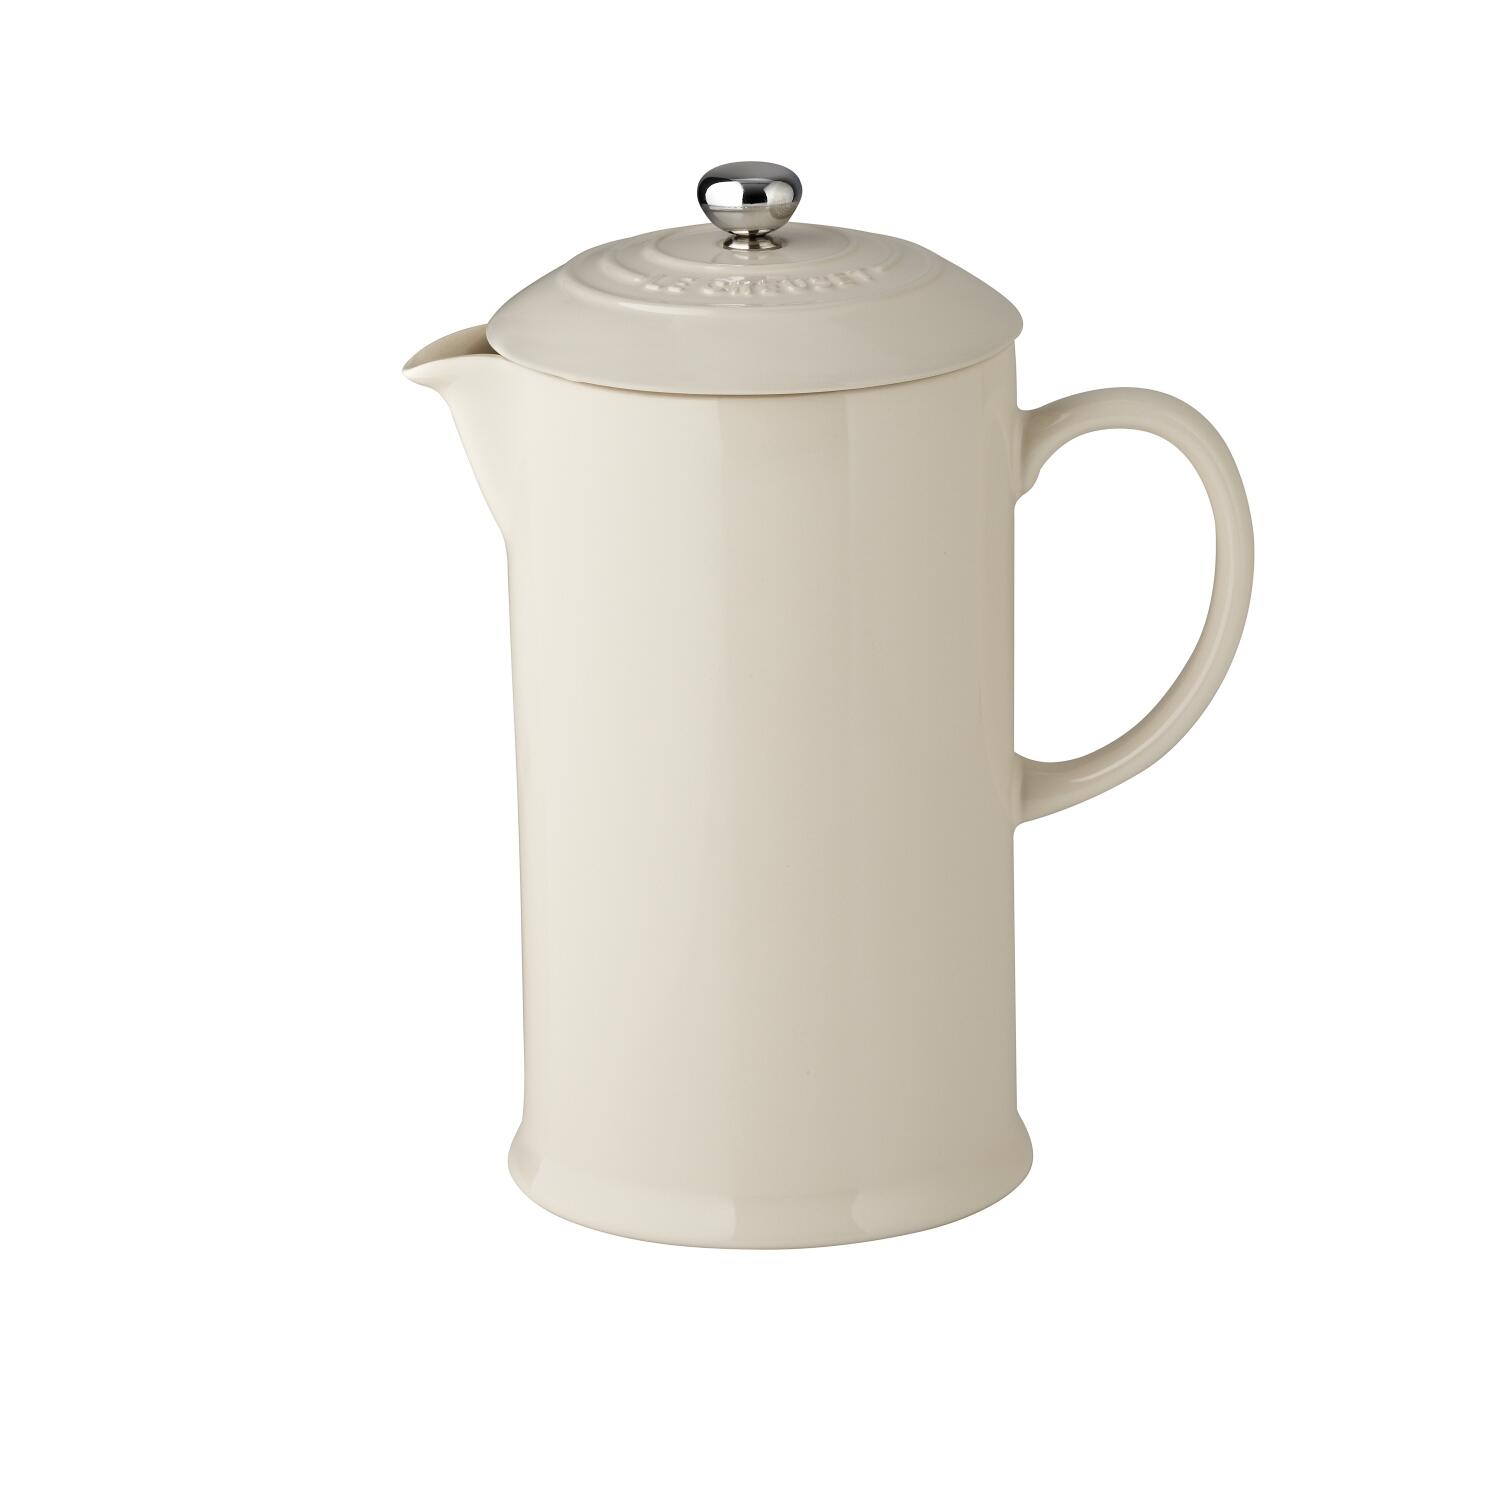 Le Creuset Kaffeebereiter in creme